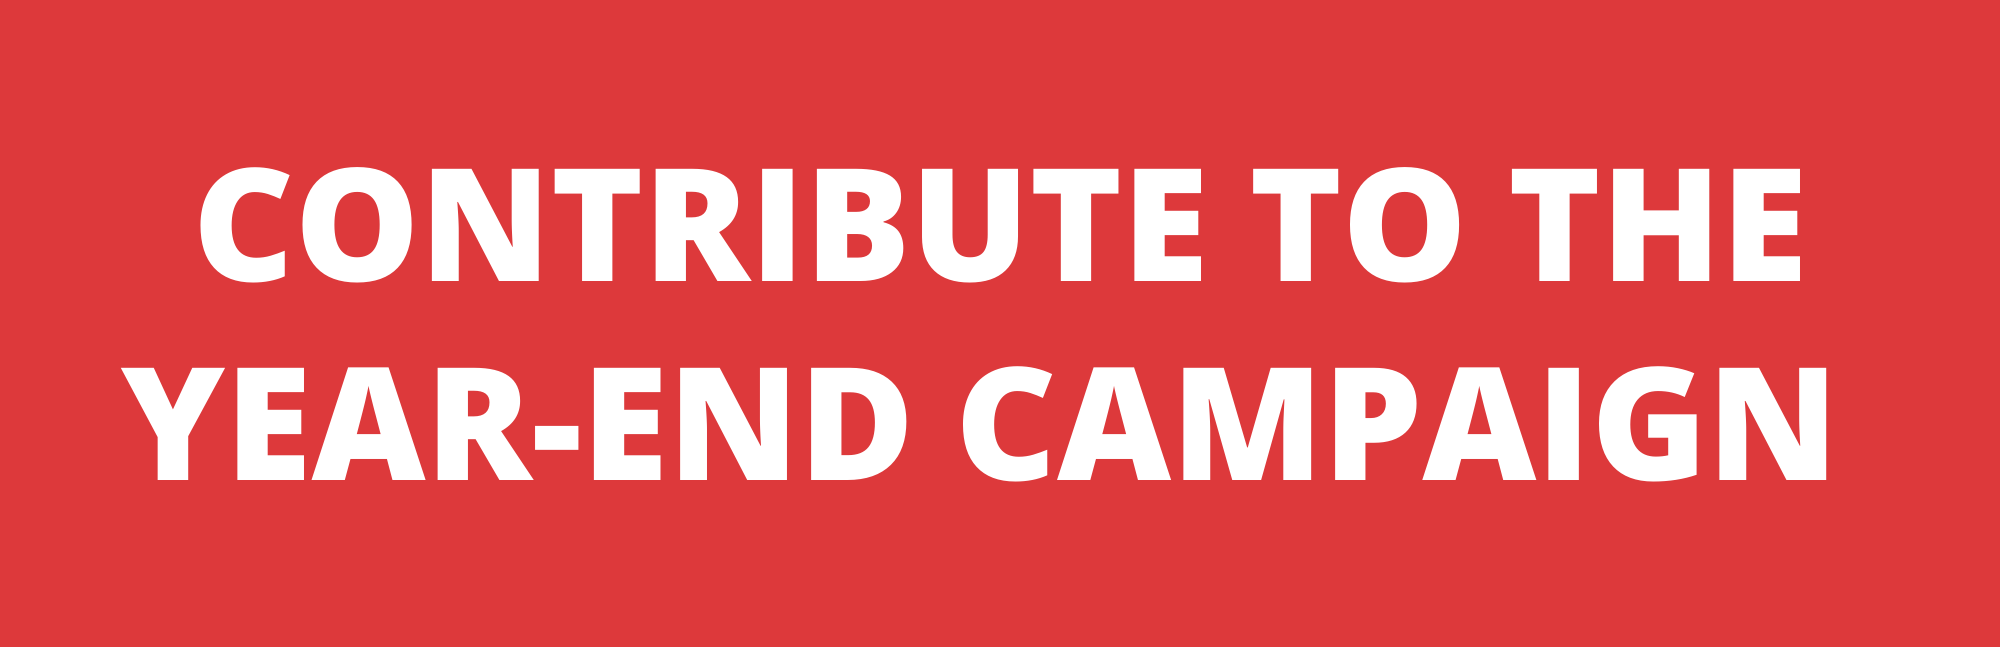 Contribute to the Year-End Campaign